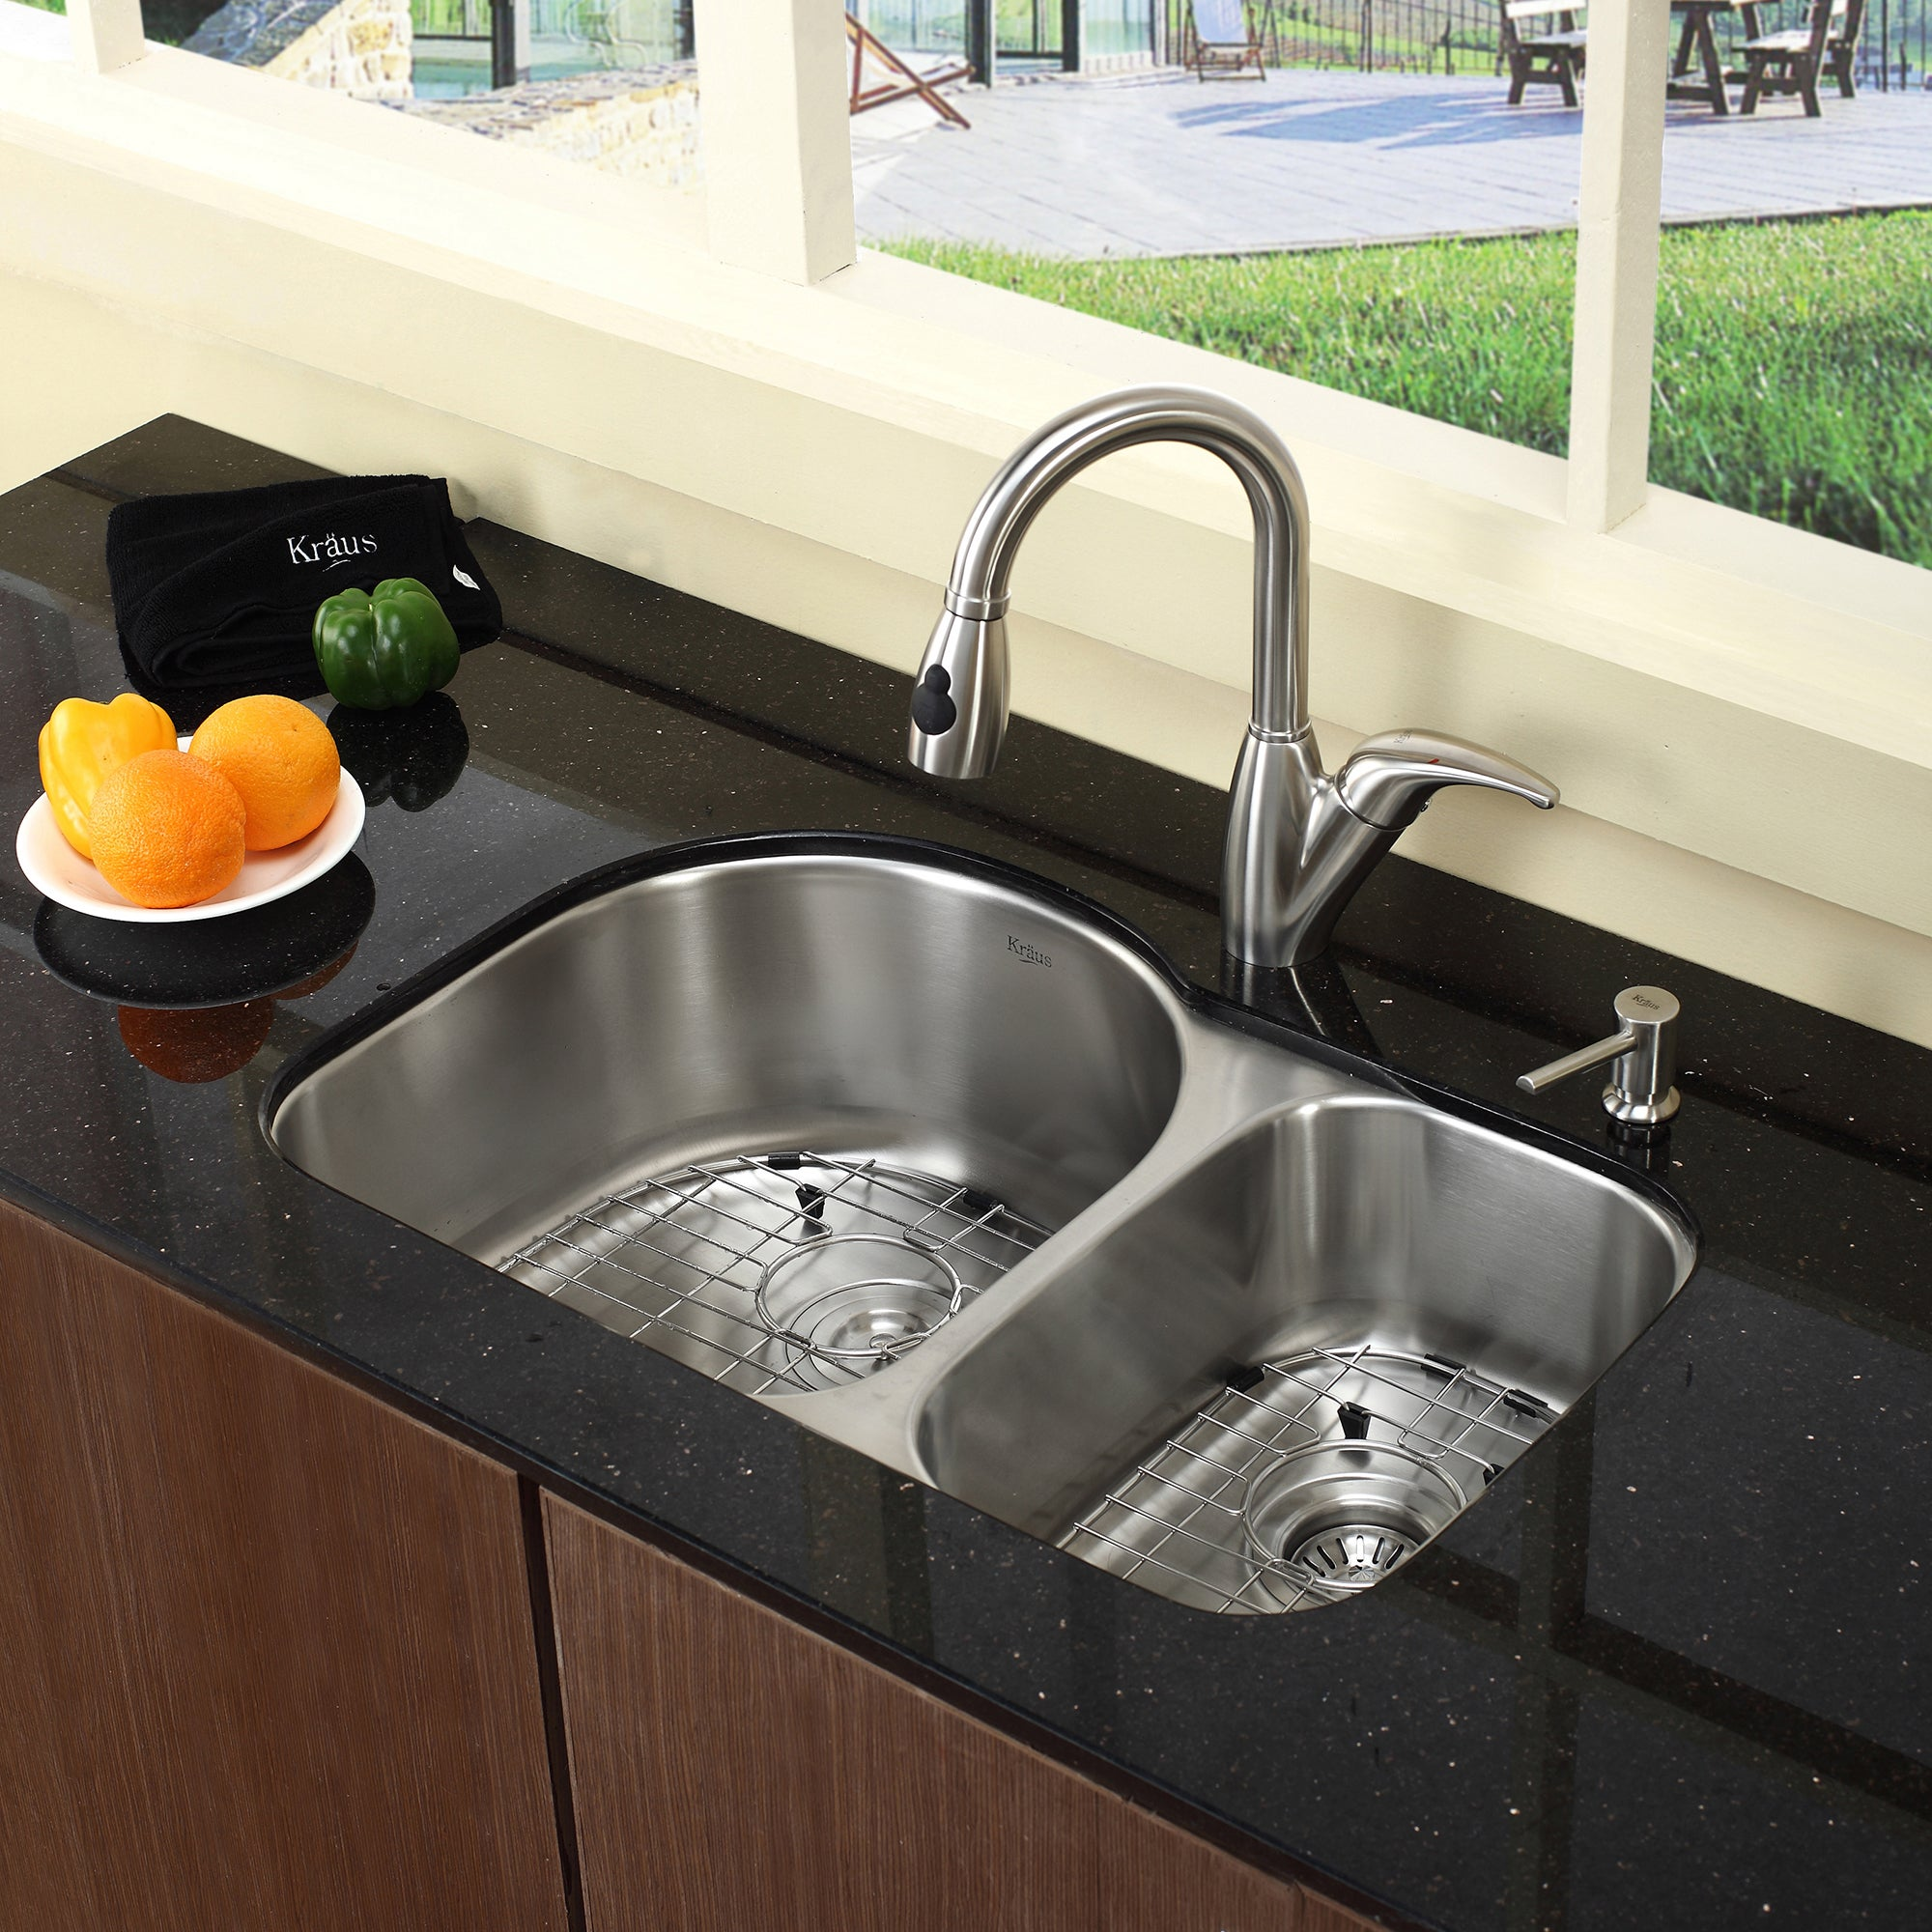 60 40 Kitchen Sink Kraus 30 inch undermount 6040 double bowl 16 gauge stainless steel kraus 30 inch undermount 6040 double bowl 16 gauge stainless steel kitchen sink with noisedefend soundproofing free shipping today overstock 13013542 workwithnaturefo